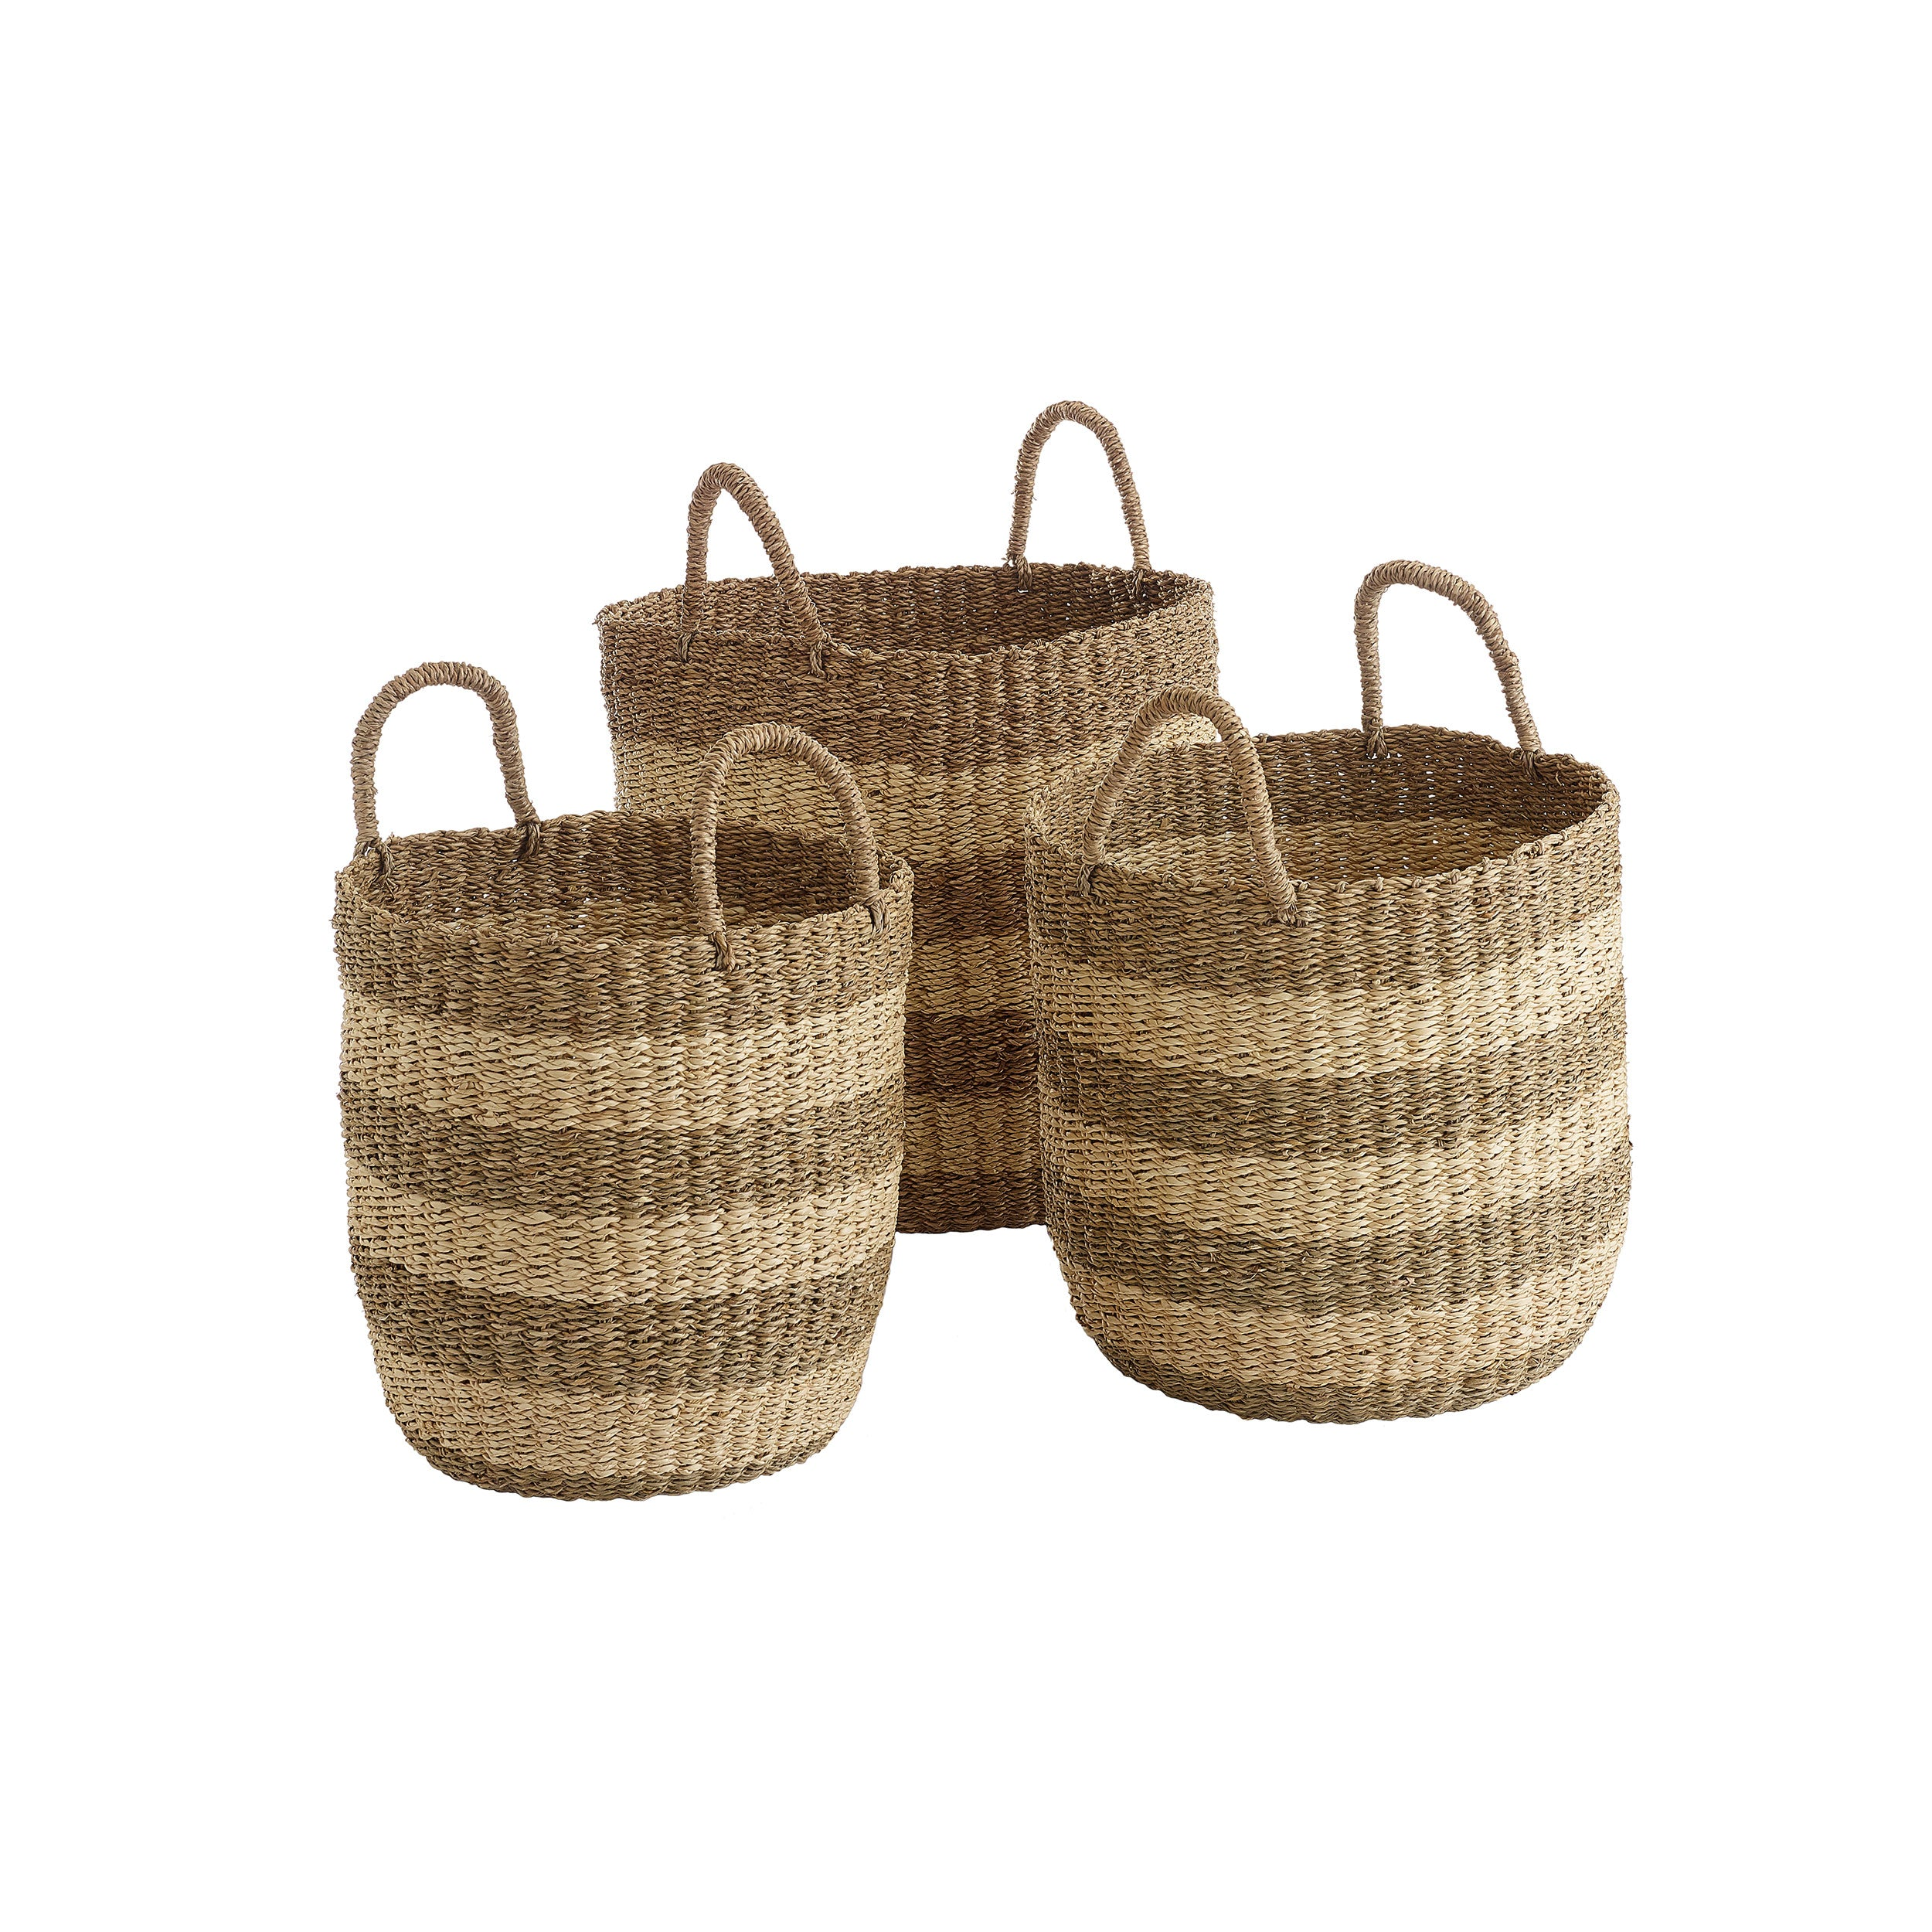 Camden Next Baskets set of 3